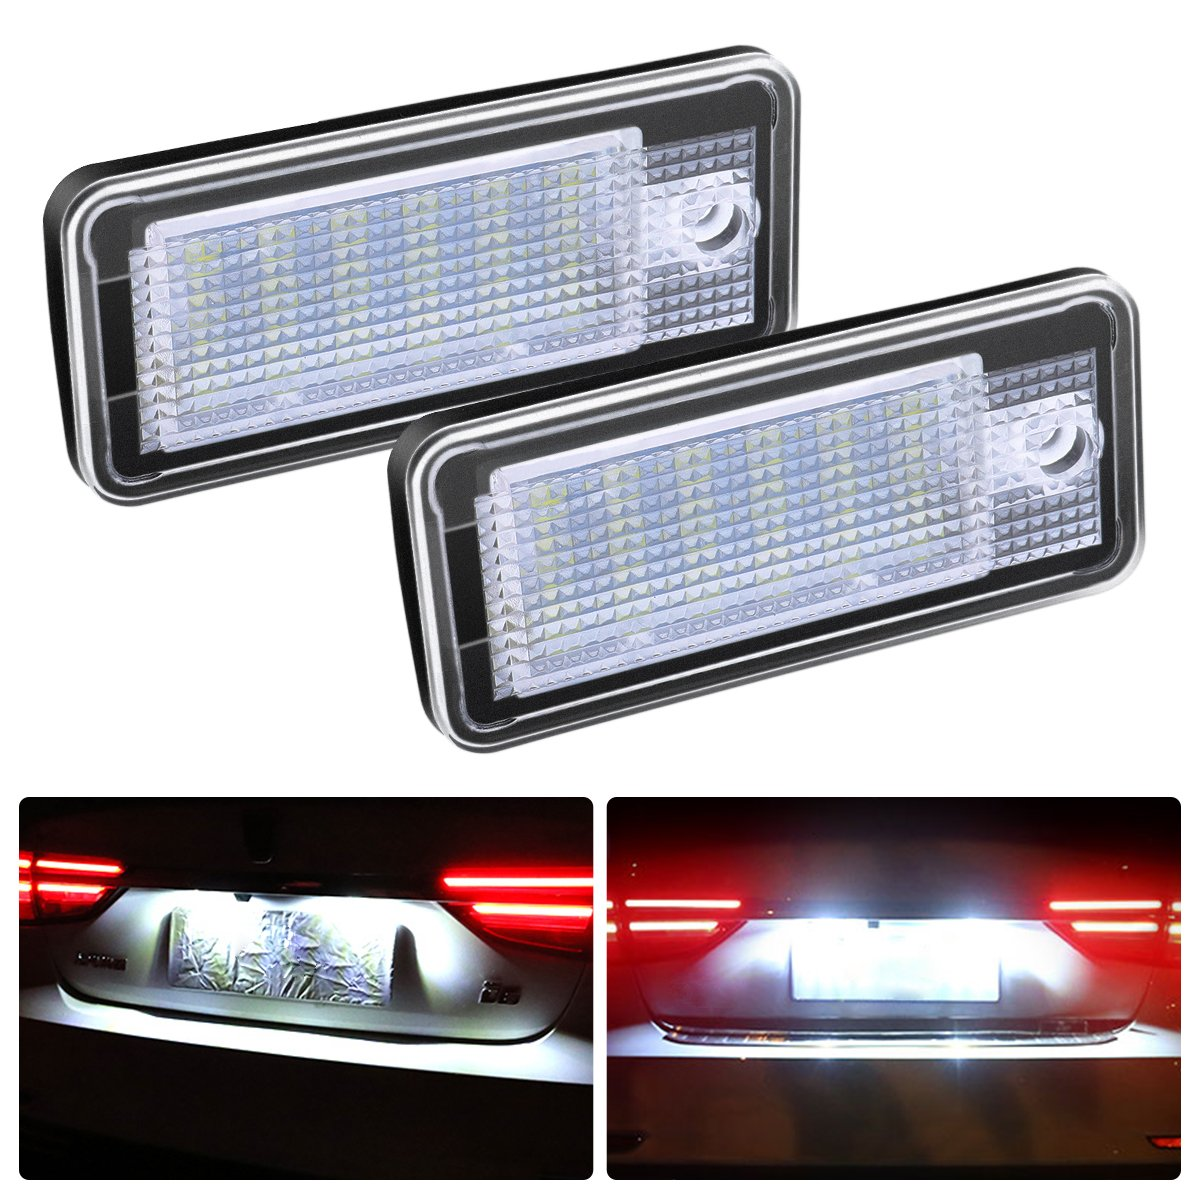 Ambother 2x LED Number License Plate Light for A3 A6 A4 Q7 de2hits13695